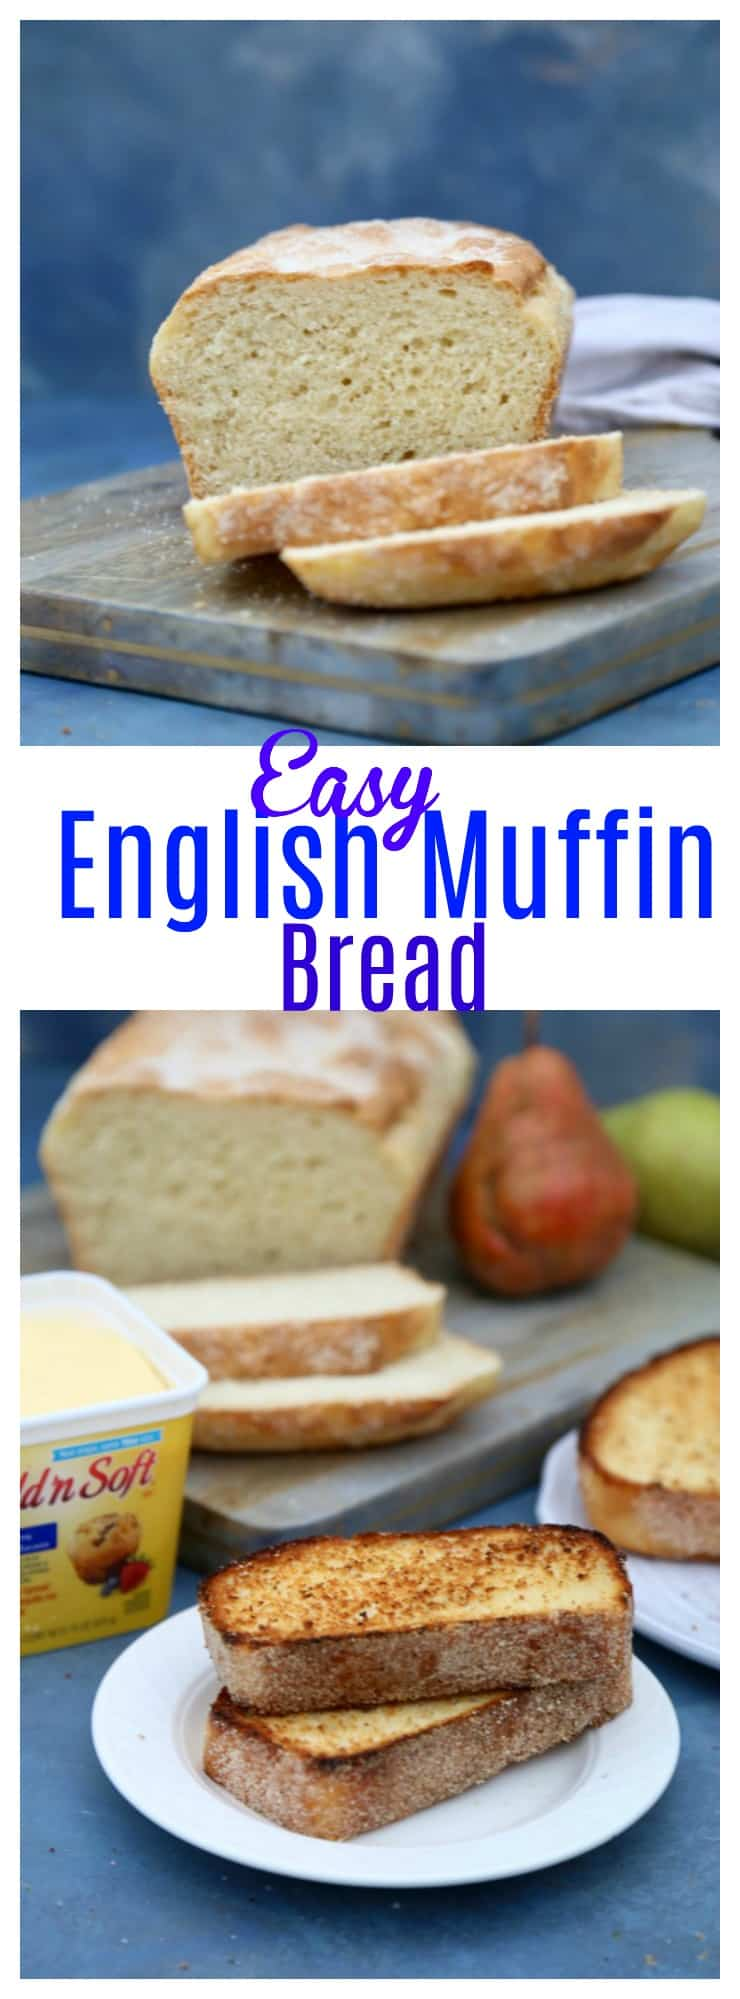 Easy English Muffin Bread. Quick bread recipe perfect for freezing.